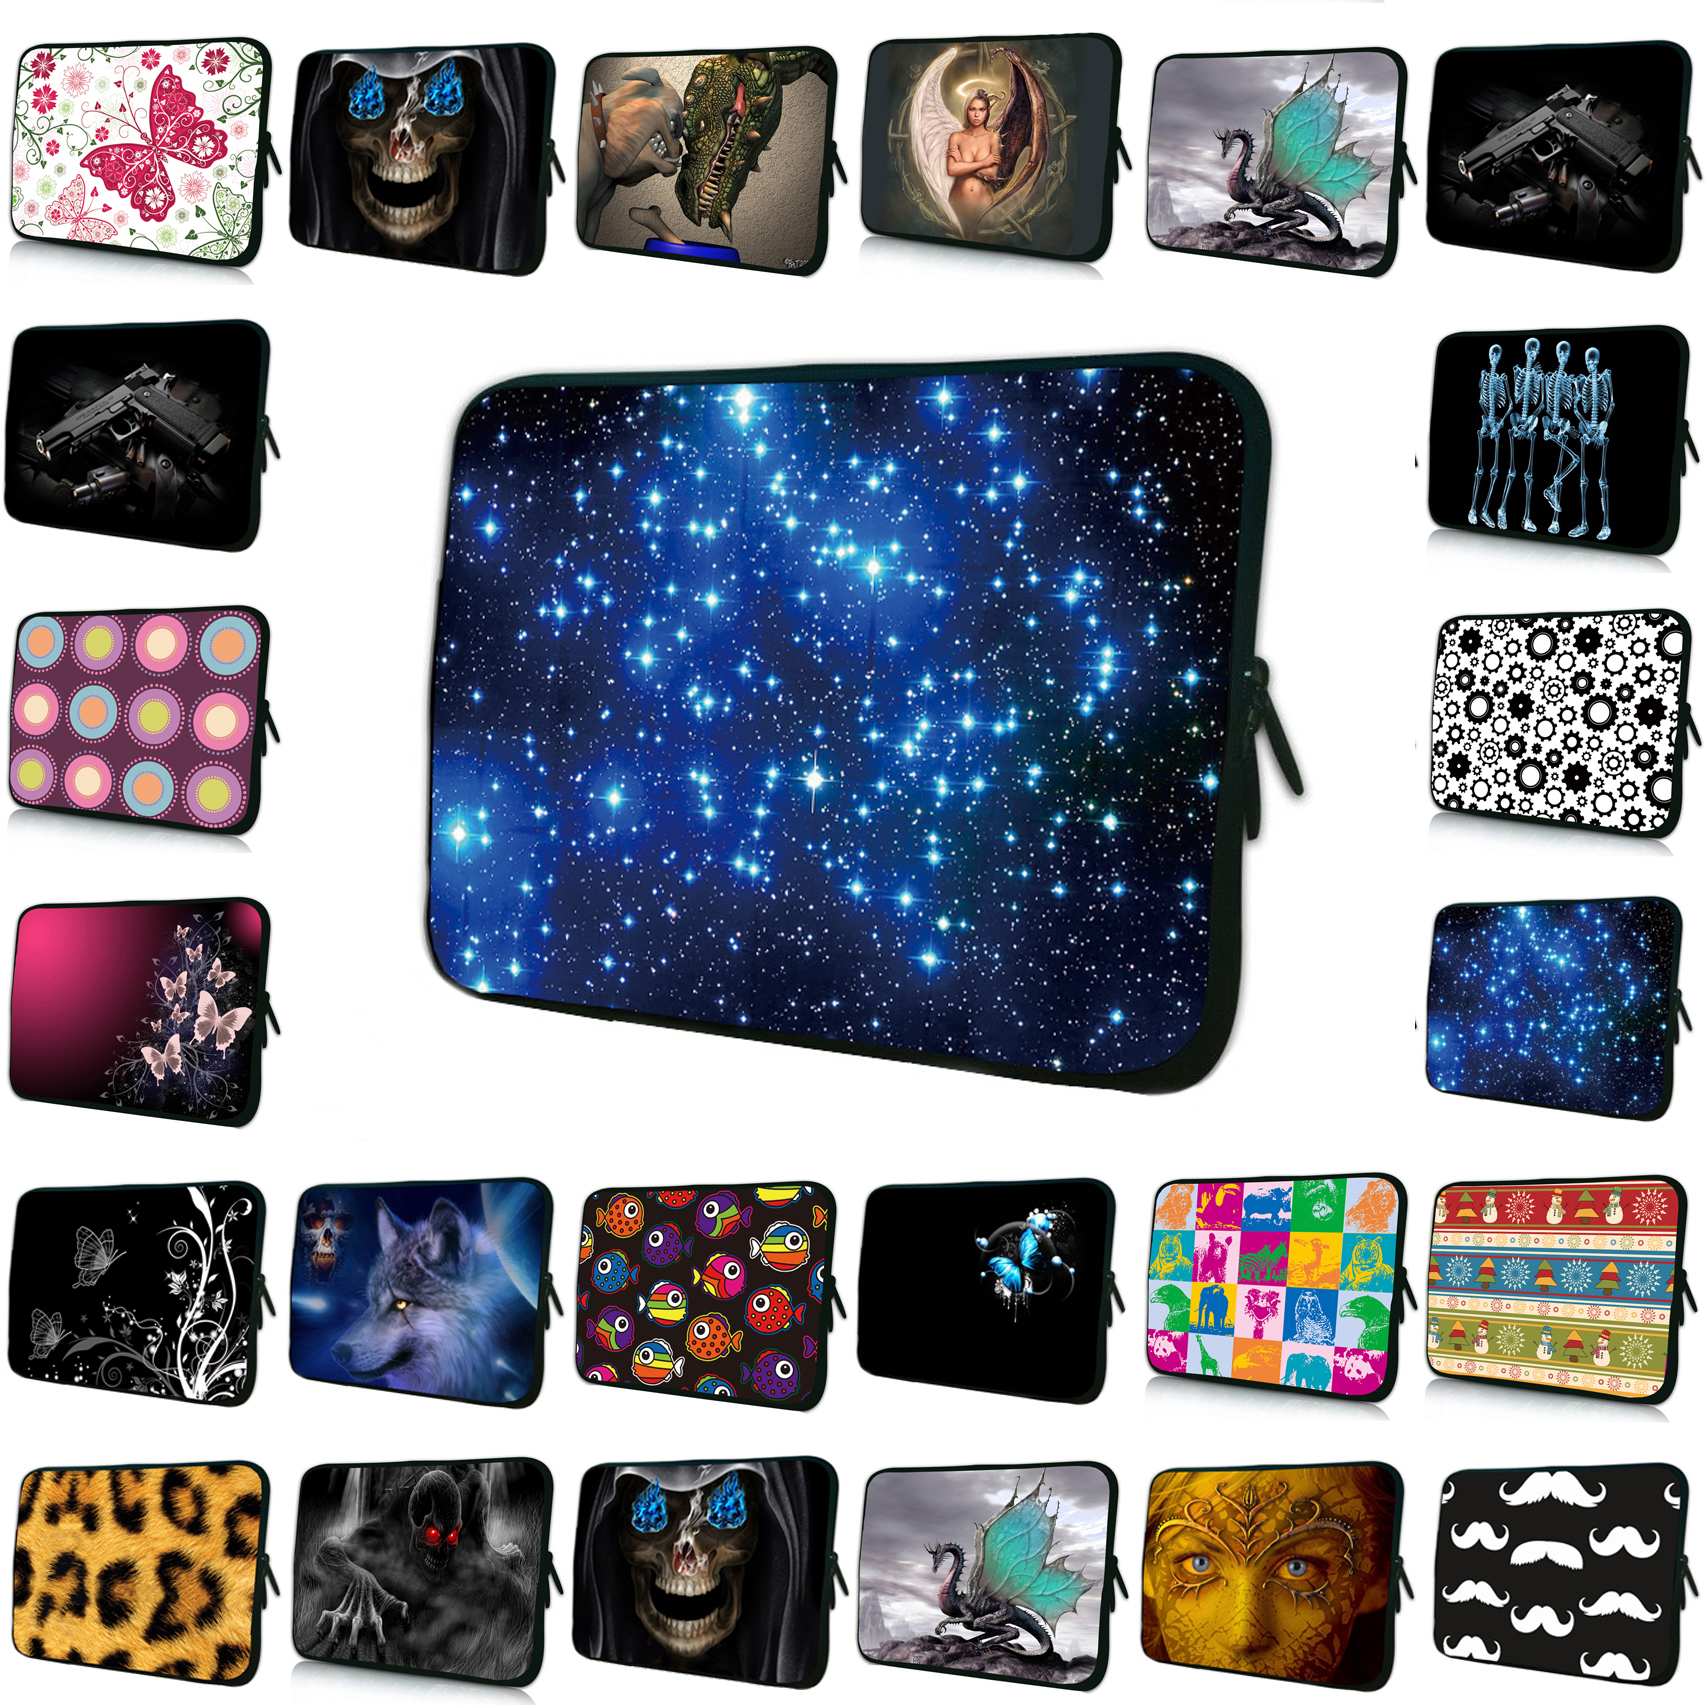 Charming 13 12.9 13.3 Inch 13 Notebook Laptop Neoprene Inner Sleeve Bags Cases For Apple Macbook Air / iPad Pro Birthday Gift